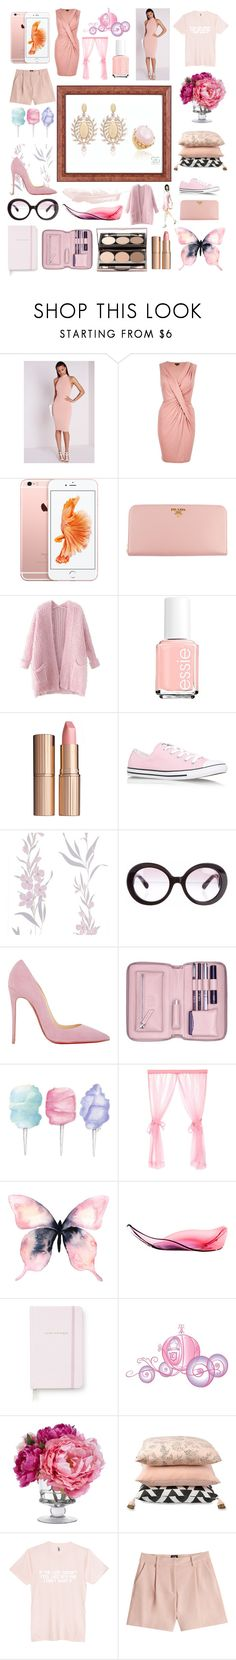 Rose Quartz Pantone 2016 by ellencmrobles on Polyvore featuring moda, River Island, Missguided, Chicnova Fashion, McQ by Alexander McQueen, Christian Louboutin, Converse, Prada, Lili Radu and Charlotte Tilbury